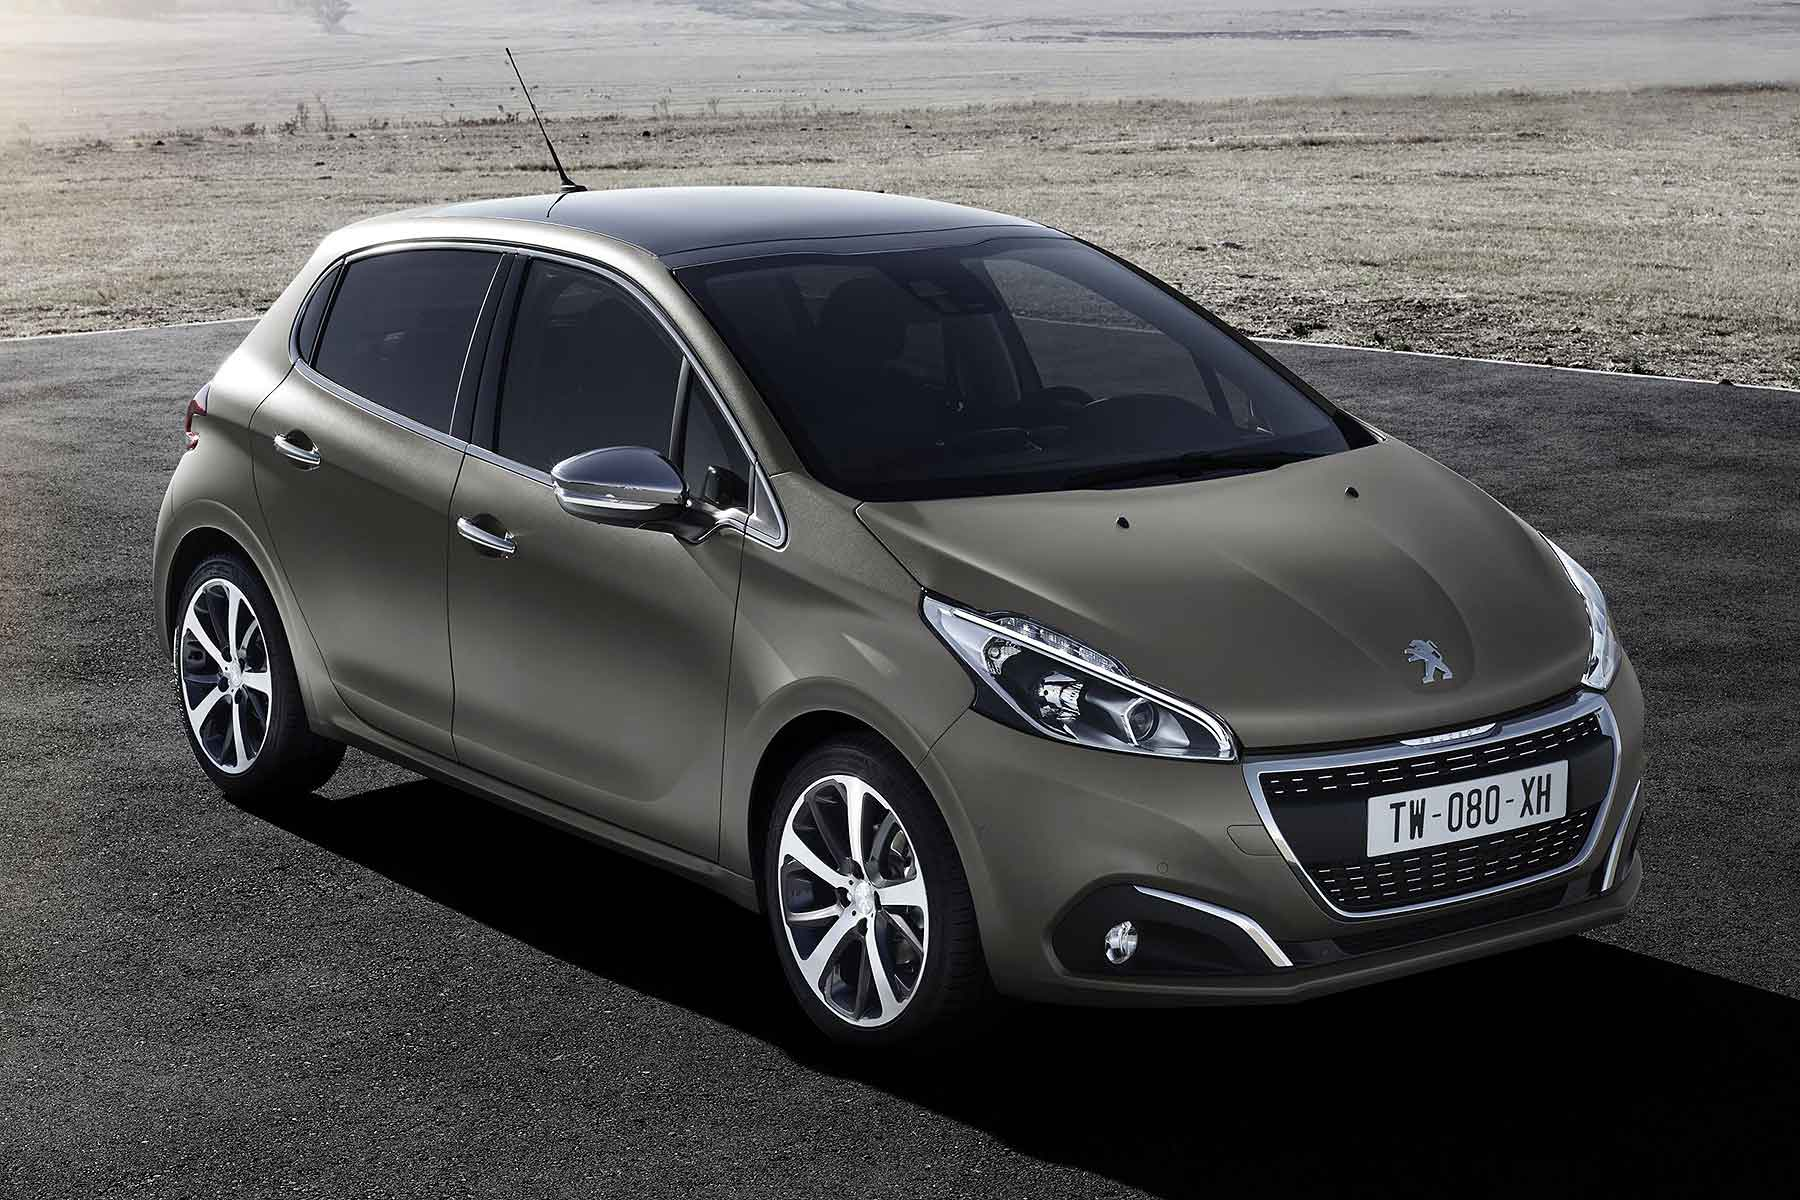 peugeot 208 in textured paint finish first motoring research. Black Bedroom Furniture Sets. Home Design Ideas